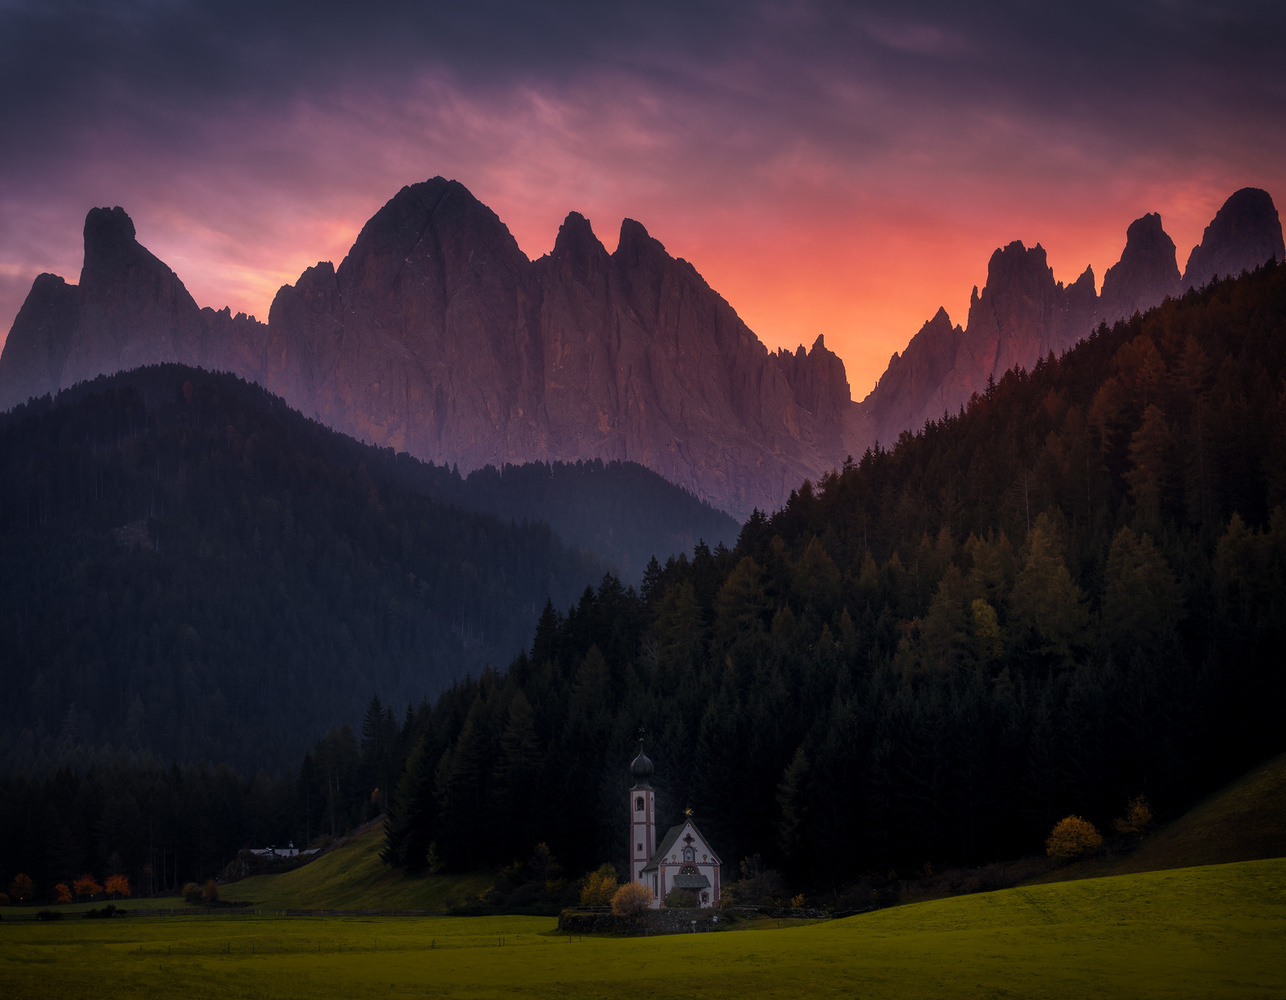 St.Johann Church by Kim Jenssen